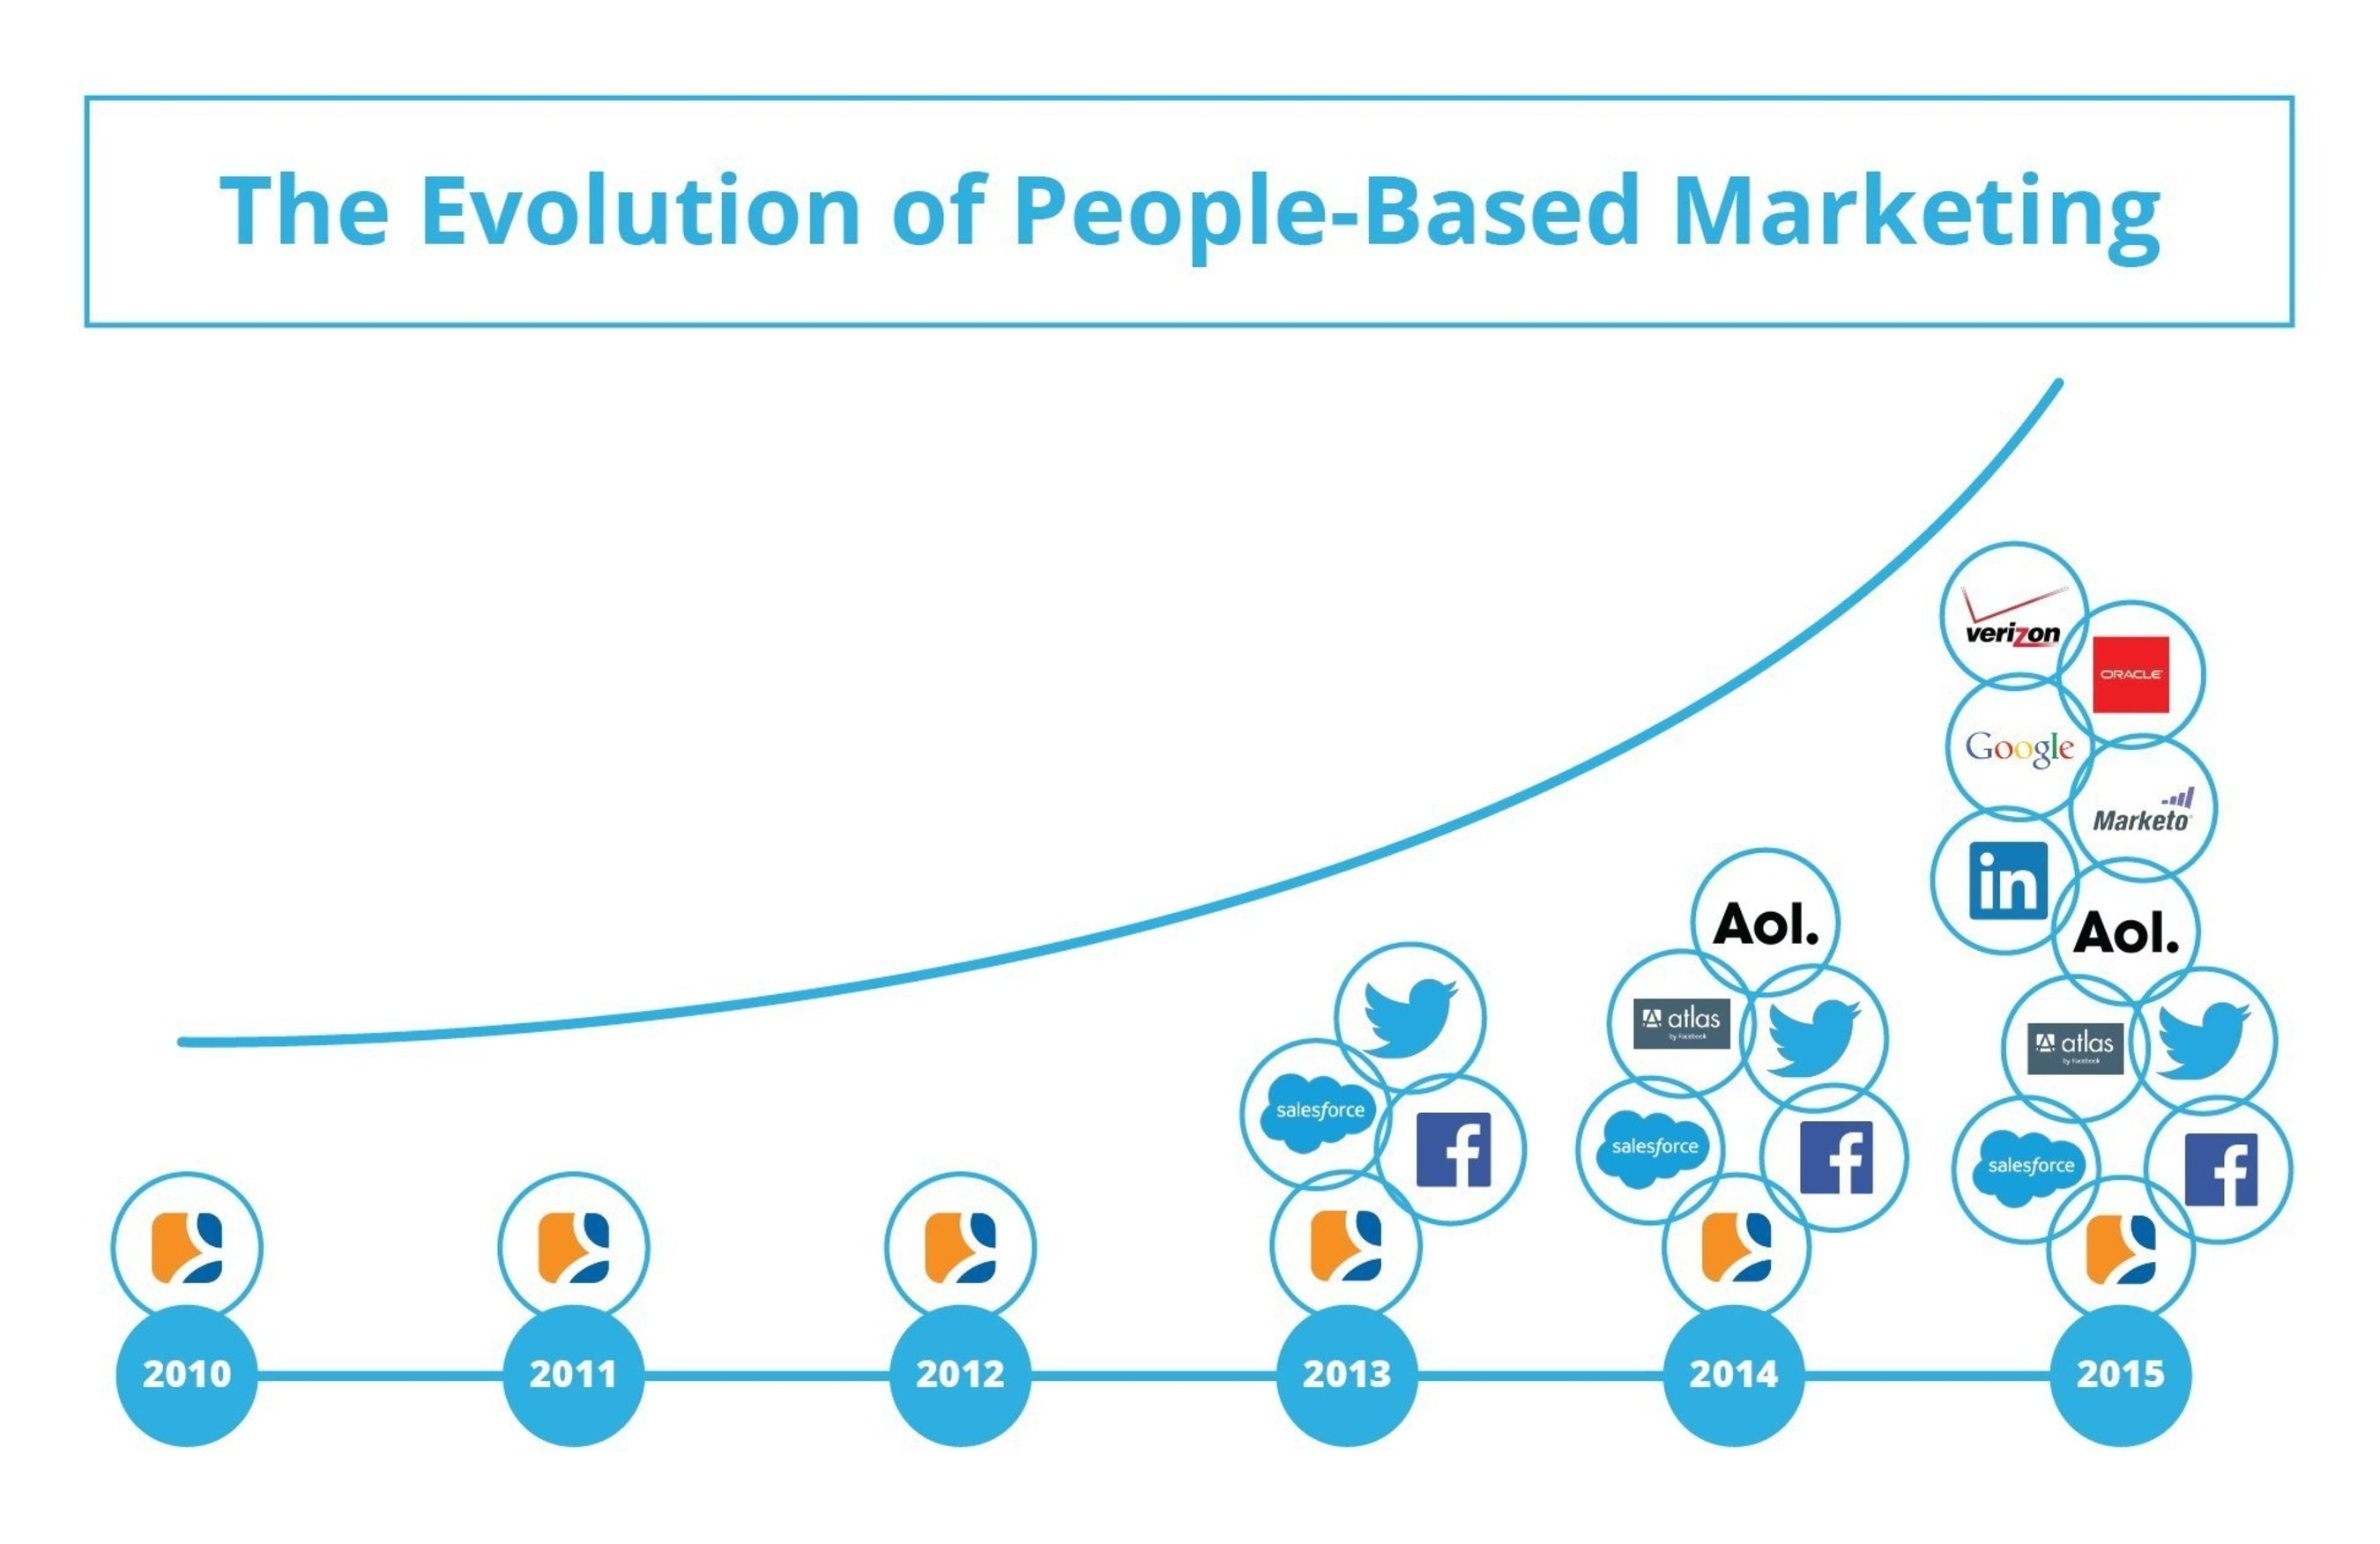 A timeline of the proliferation of People-Based Marketing Solutions